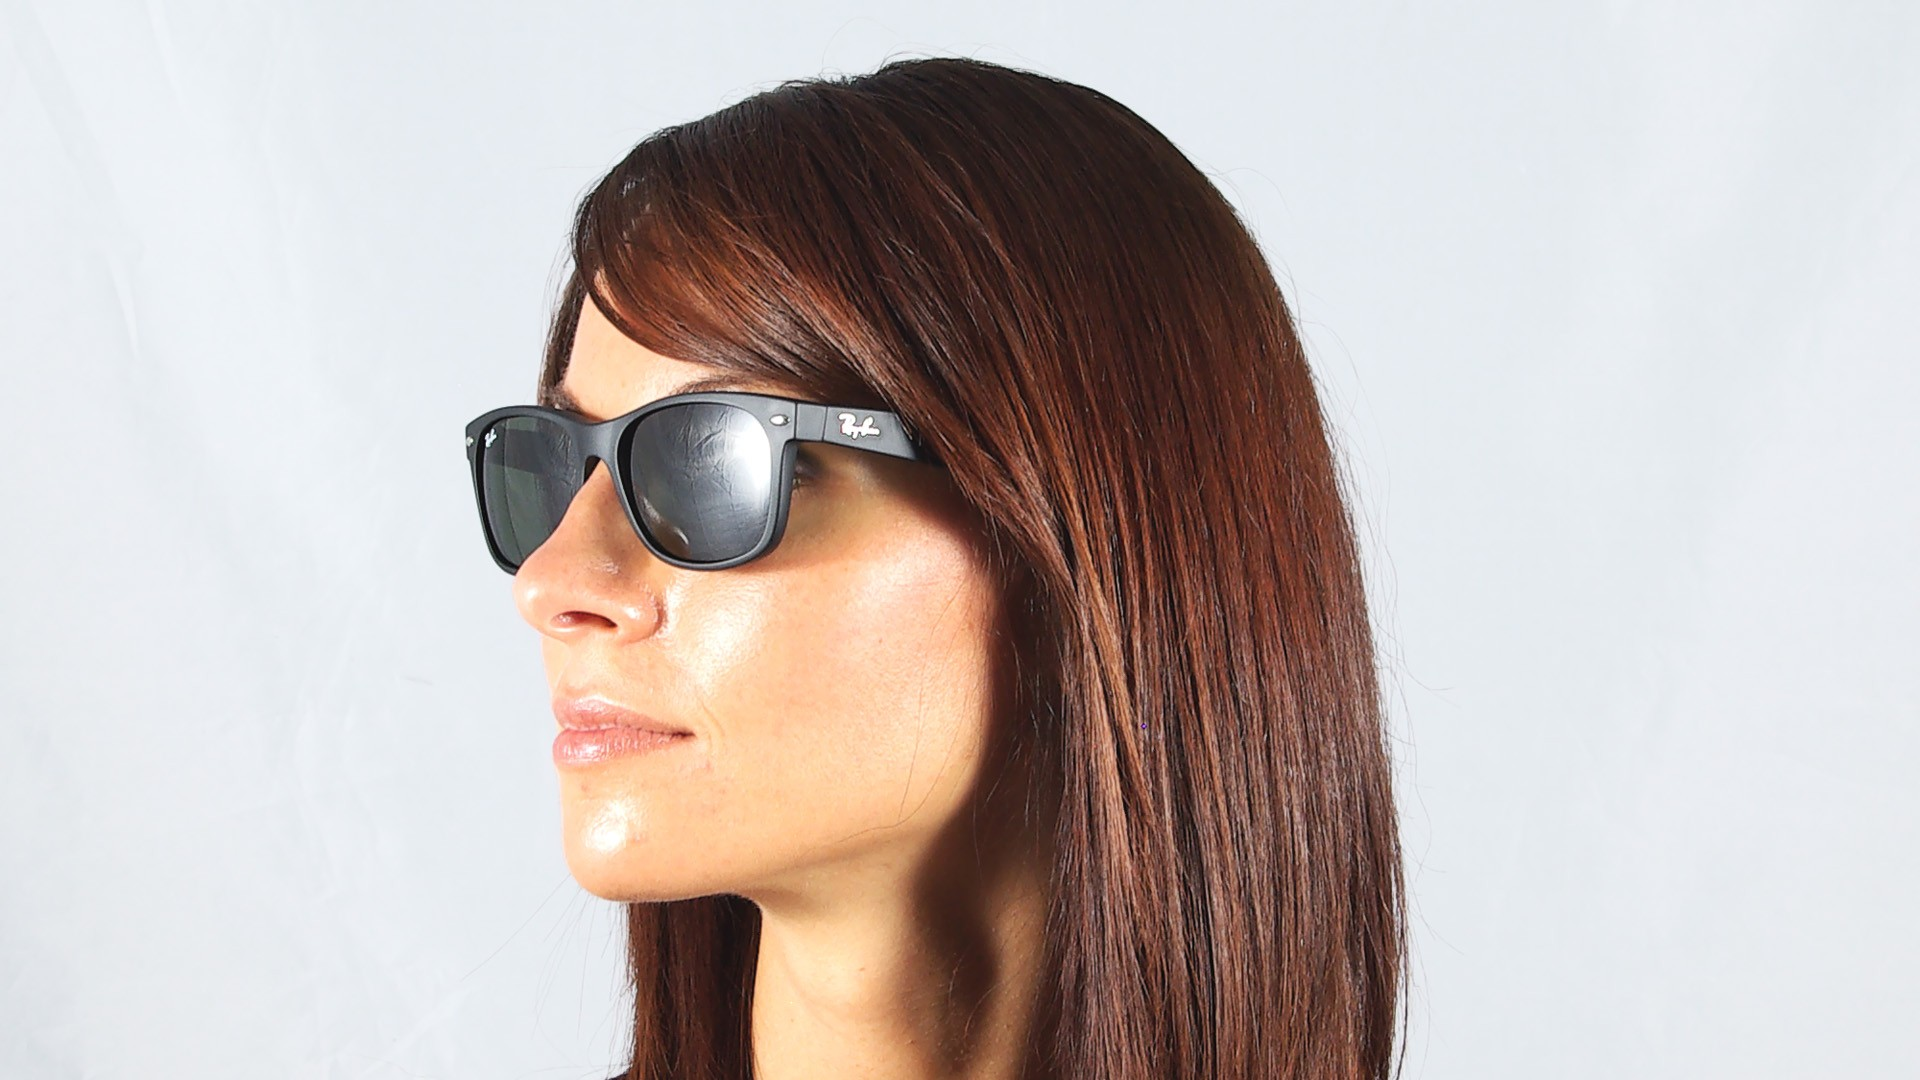 c3a9cf3005 Ray Ban Rb2132 622 55 183